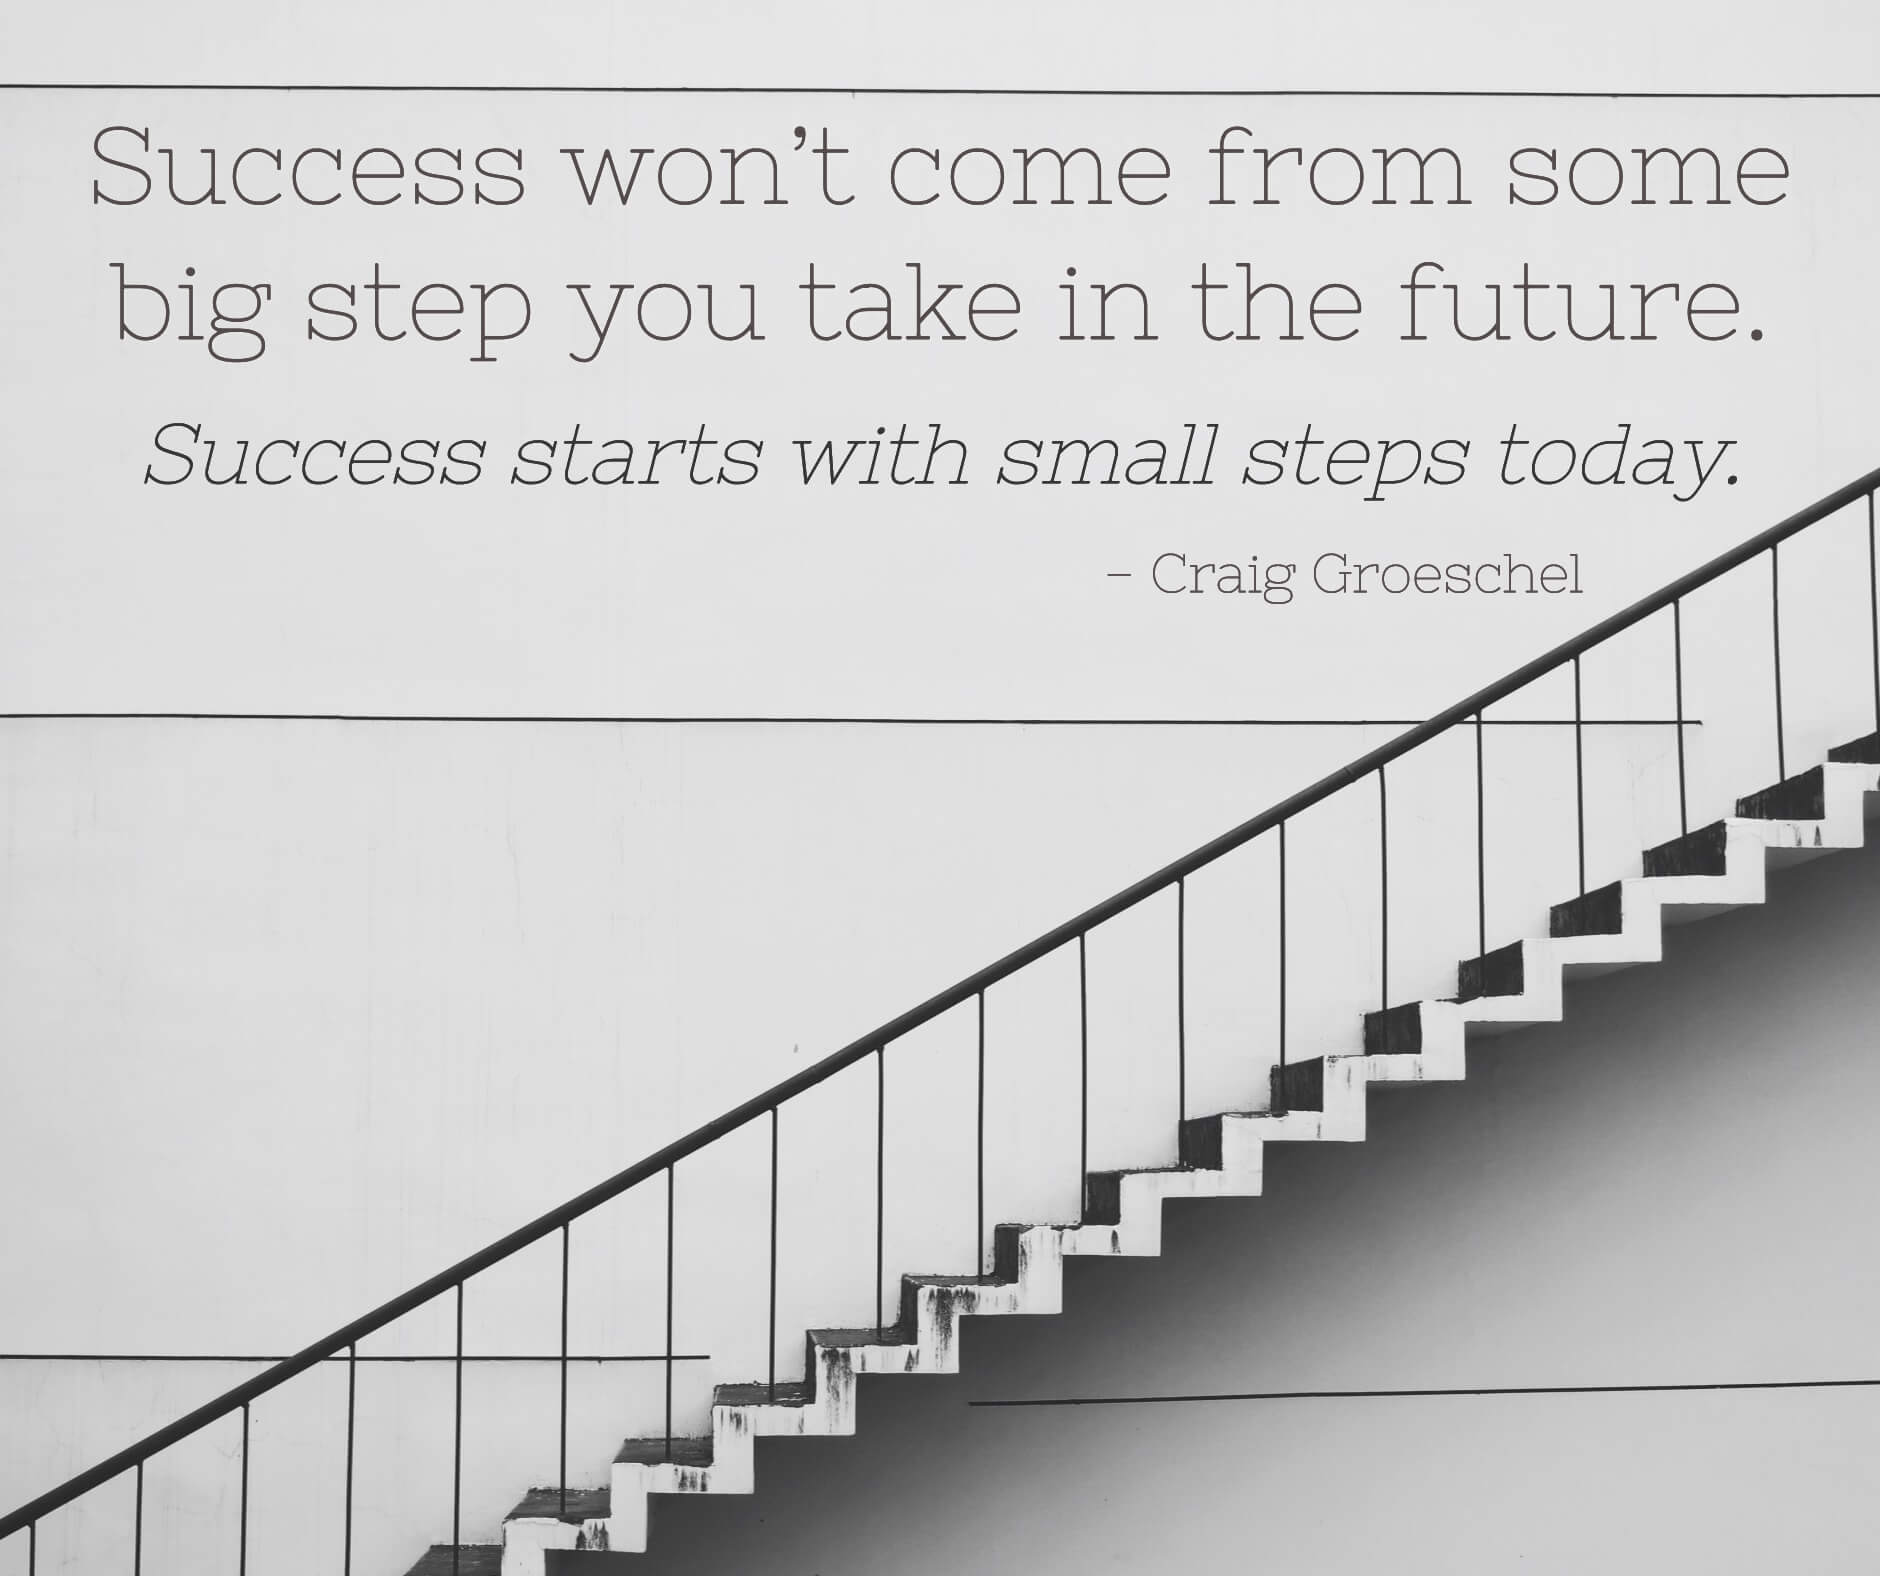 Success won't come from some big step you take in the future. Success starts with small steps today.